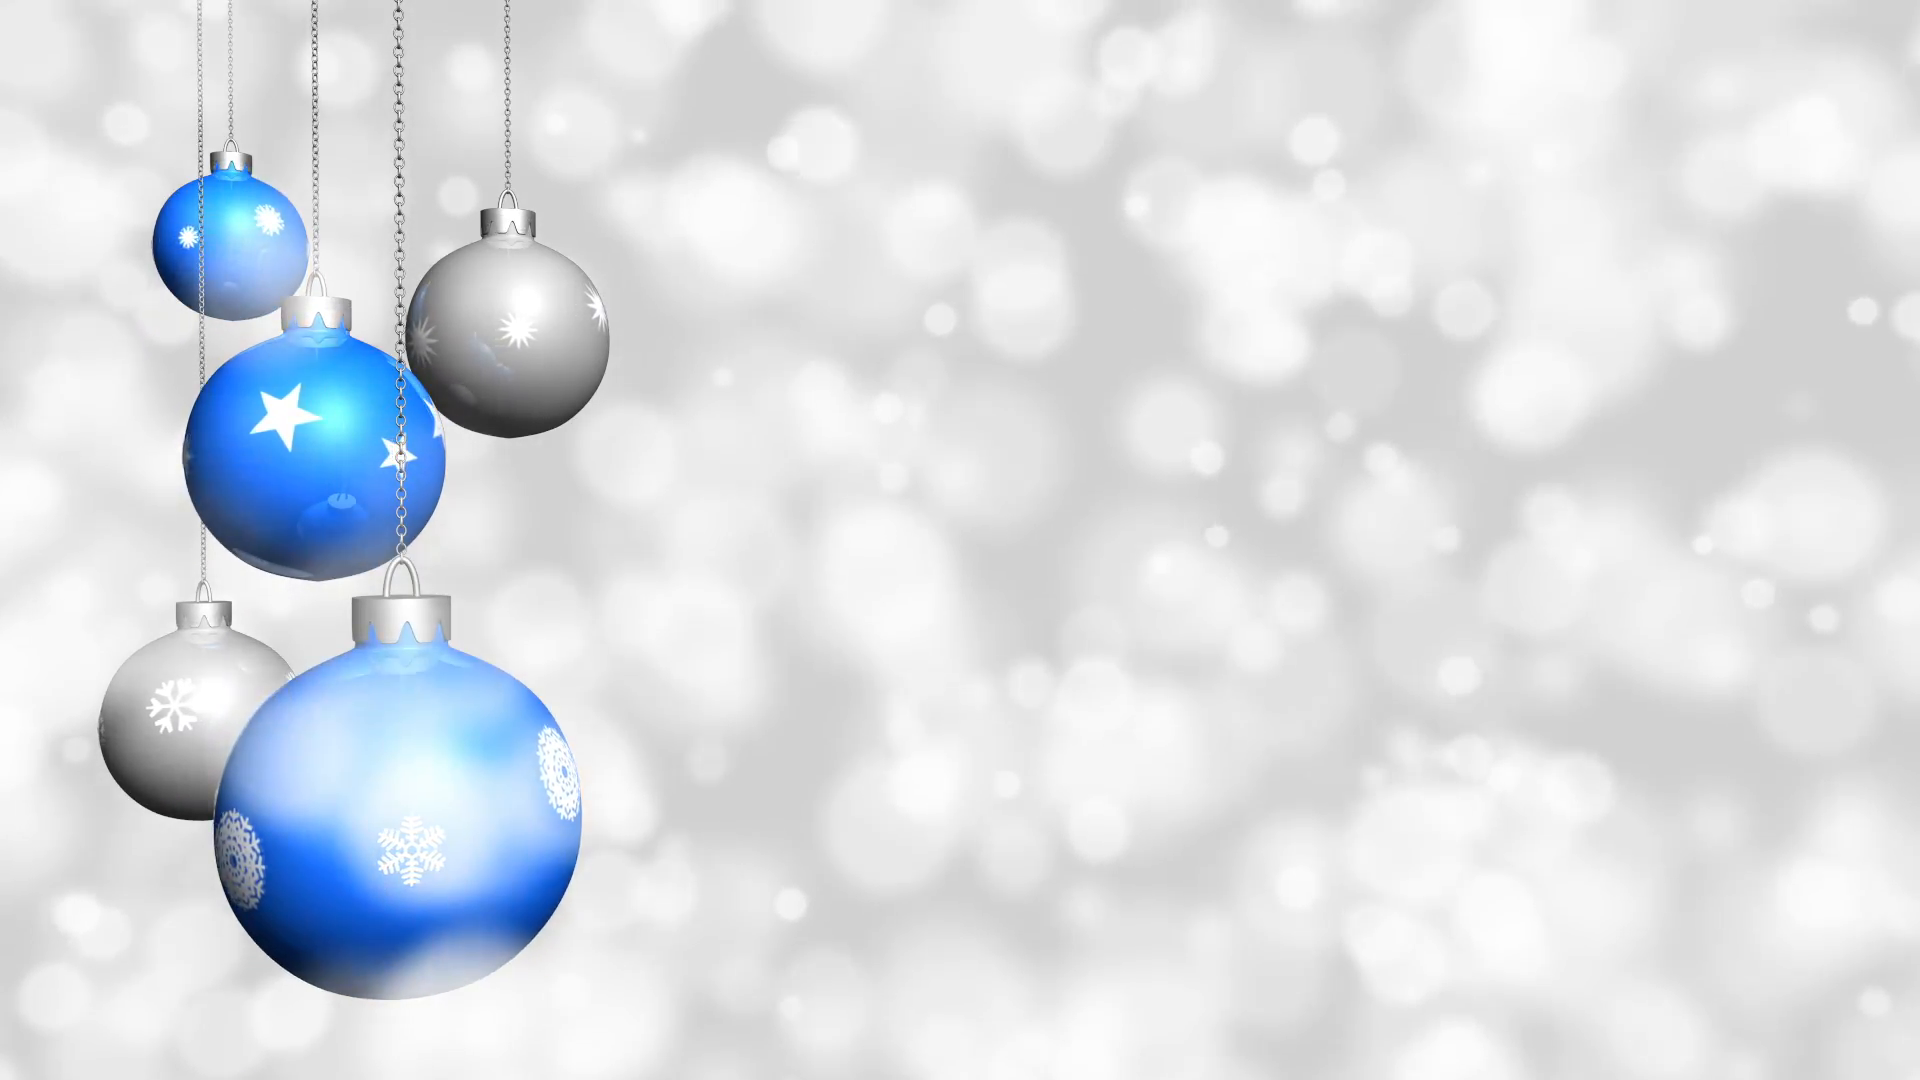 Blue Christmas Ornament Png (107+ images in Collection) Page 3.